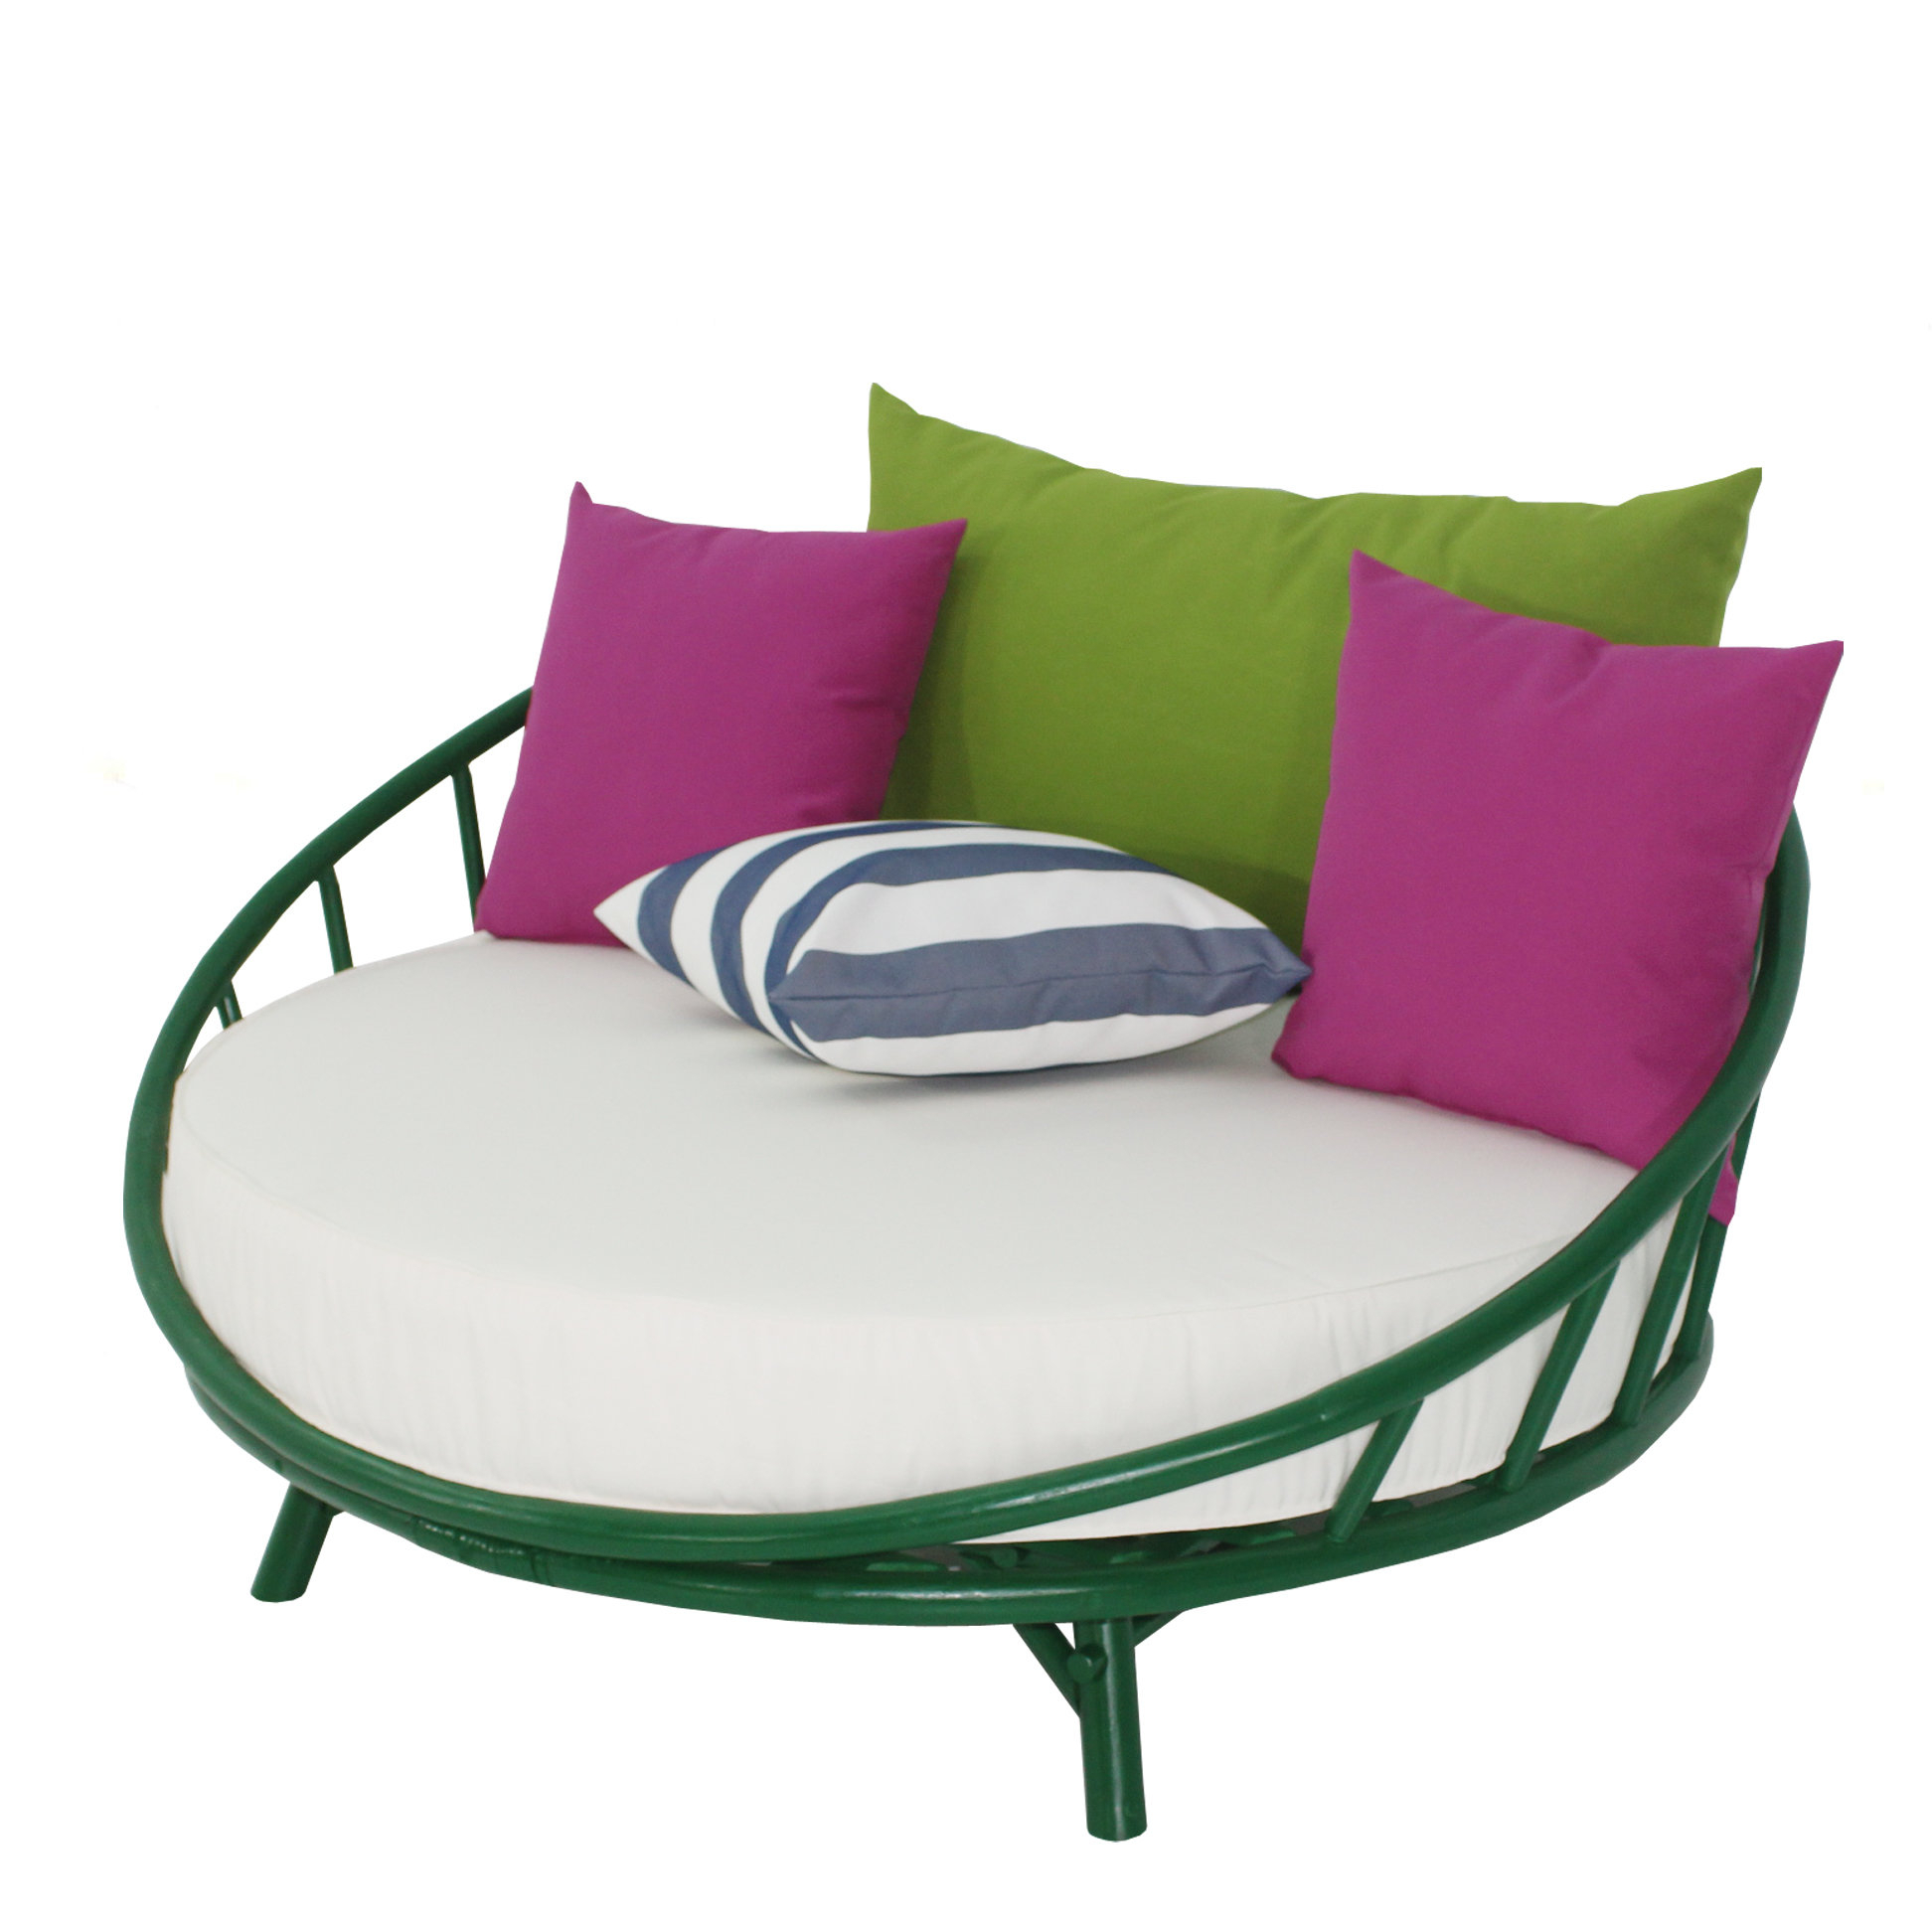 Lavina Outdoor Patio Daybeds With Cushions Regarding Well Known Olu Bamboo Large Round Patio Daybed With Cushions (Gallery 15 of 20)